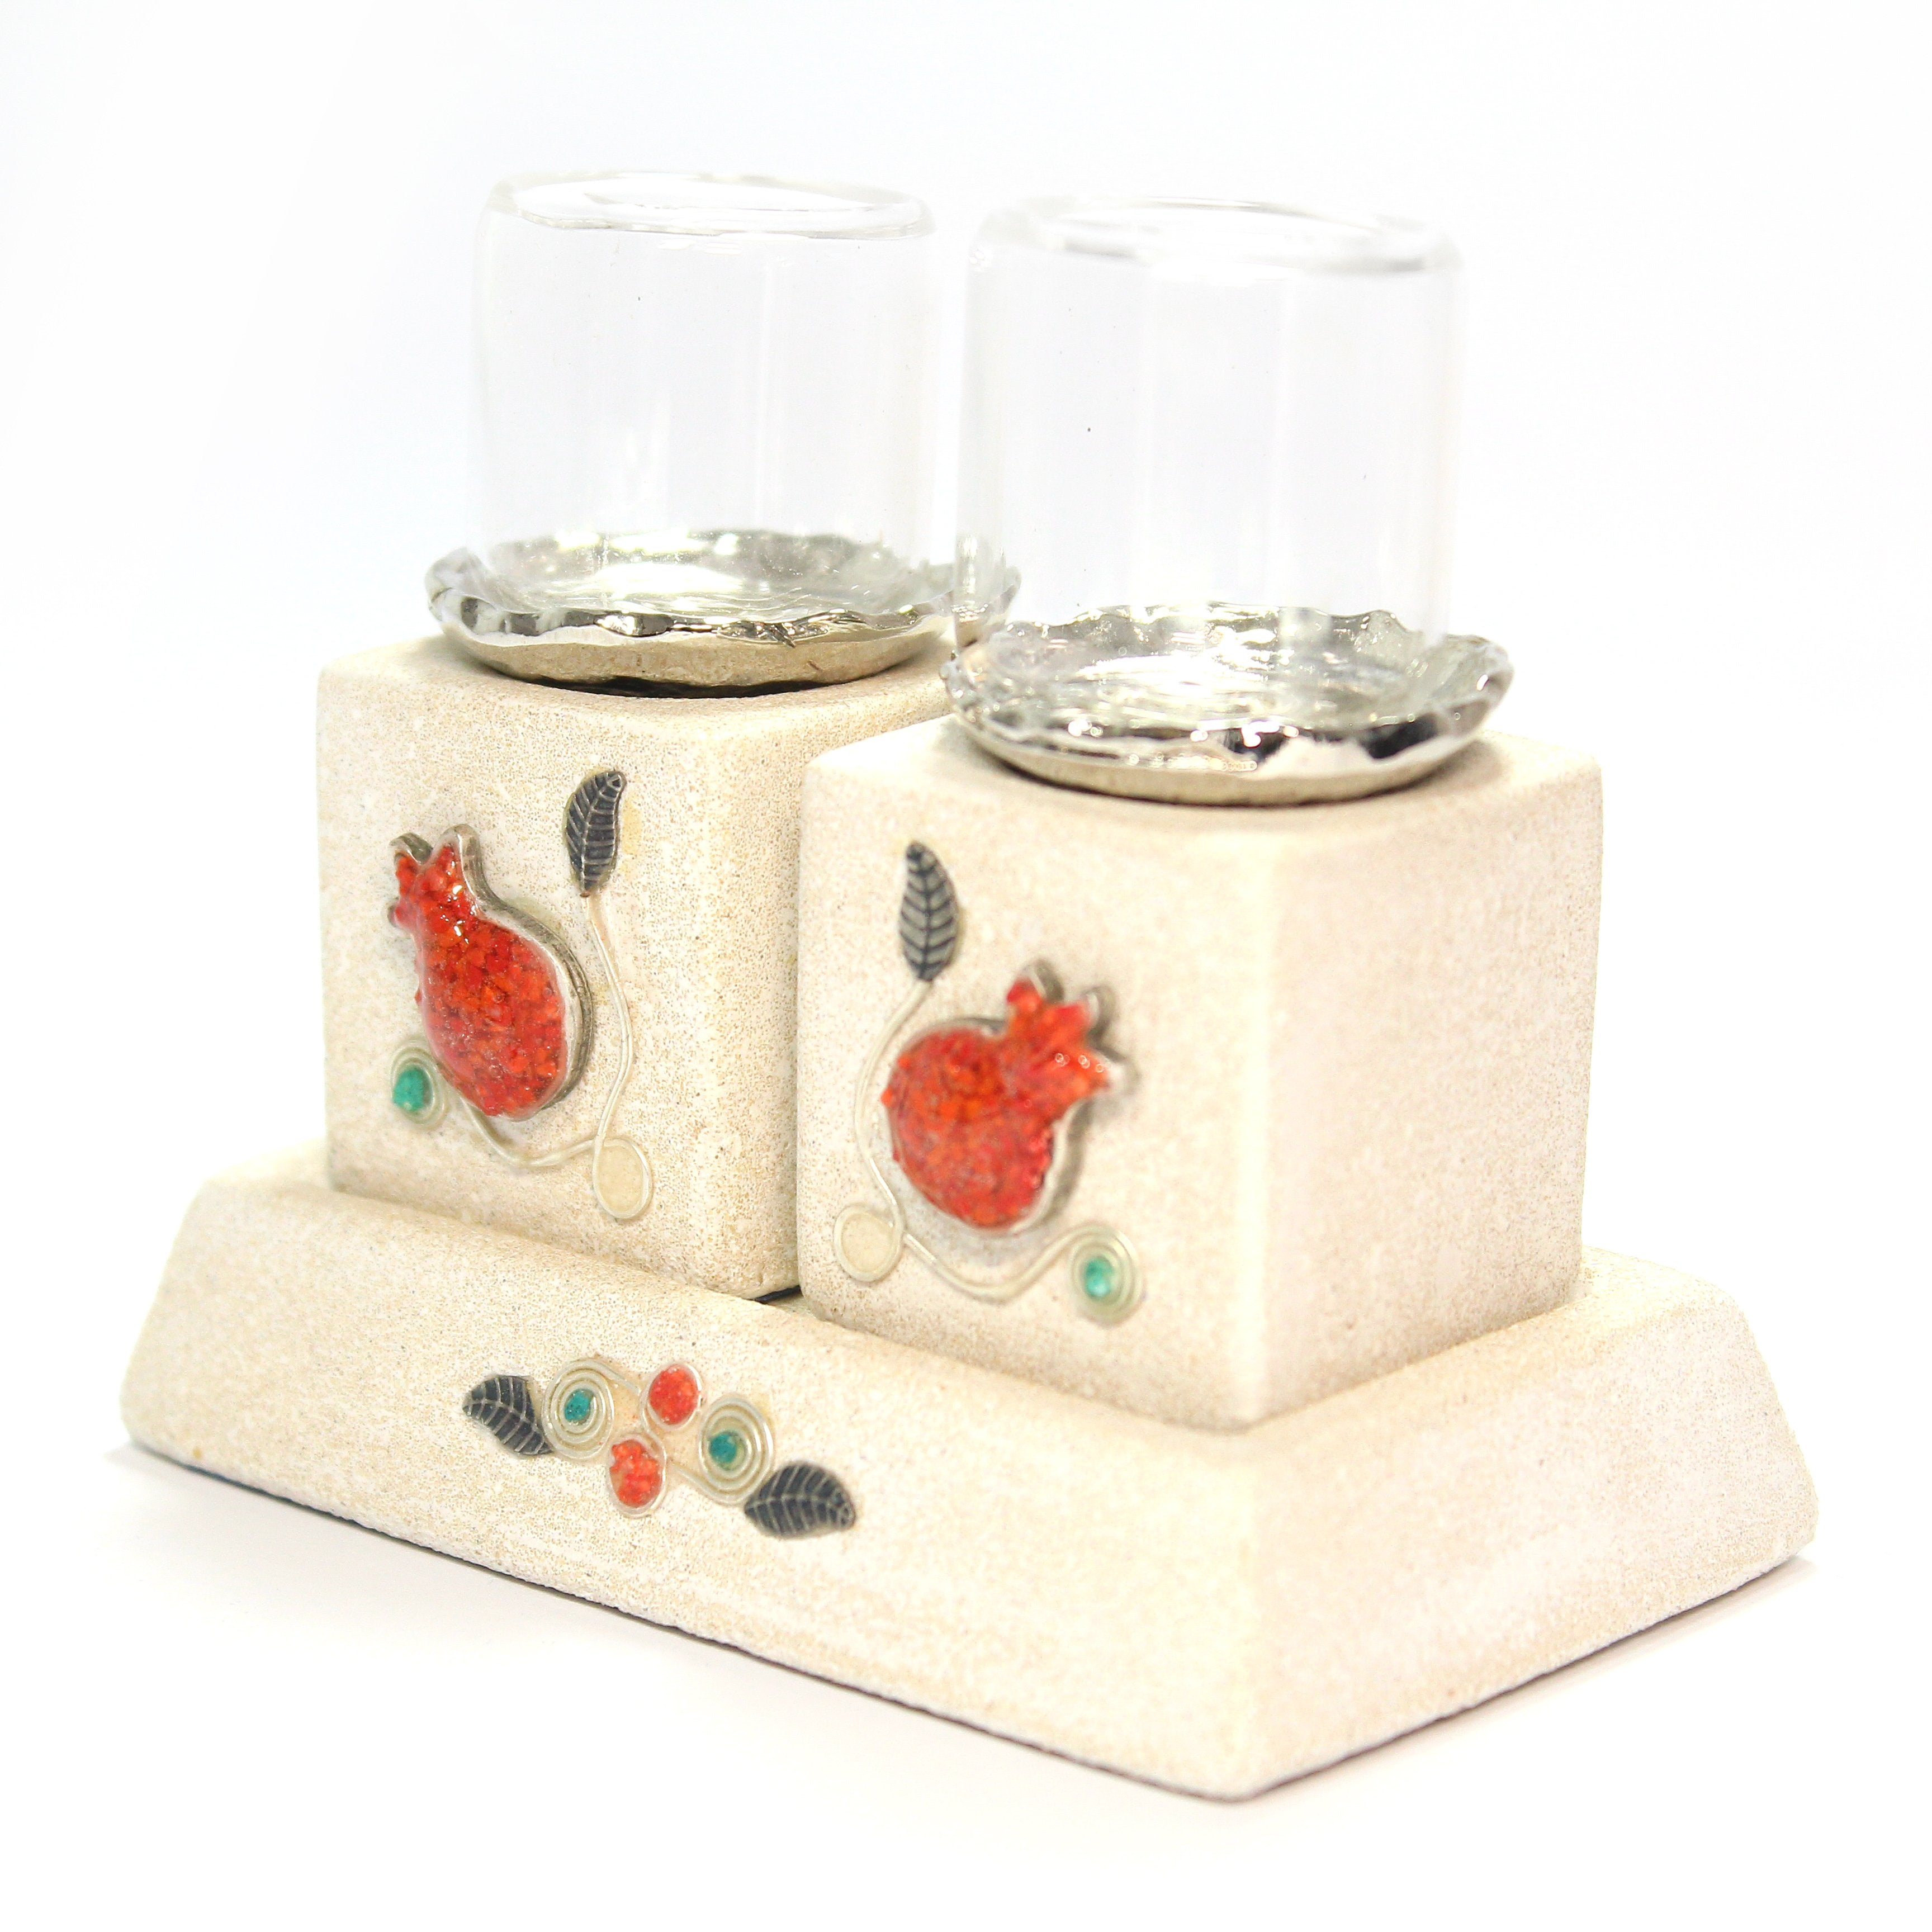 Pomegranate Candlesticks - Shulamit Kanter Official Store